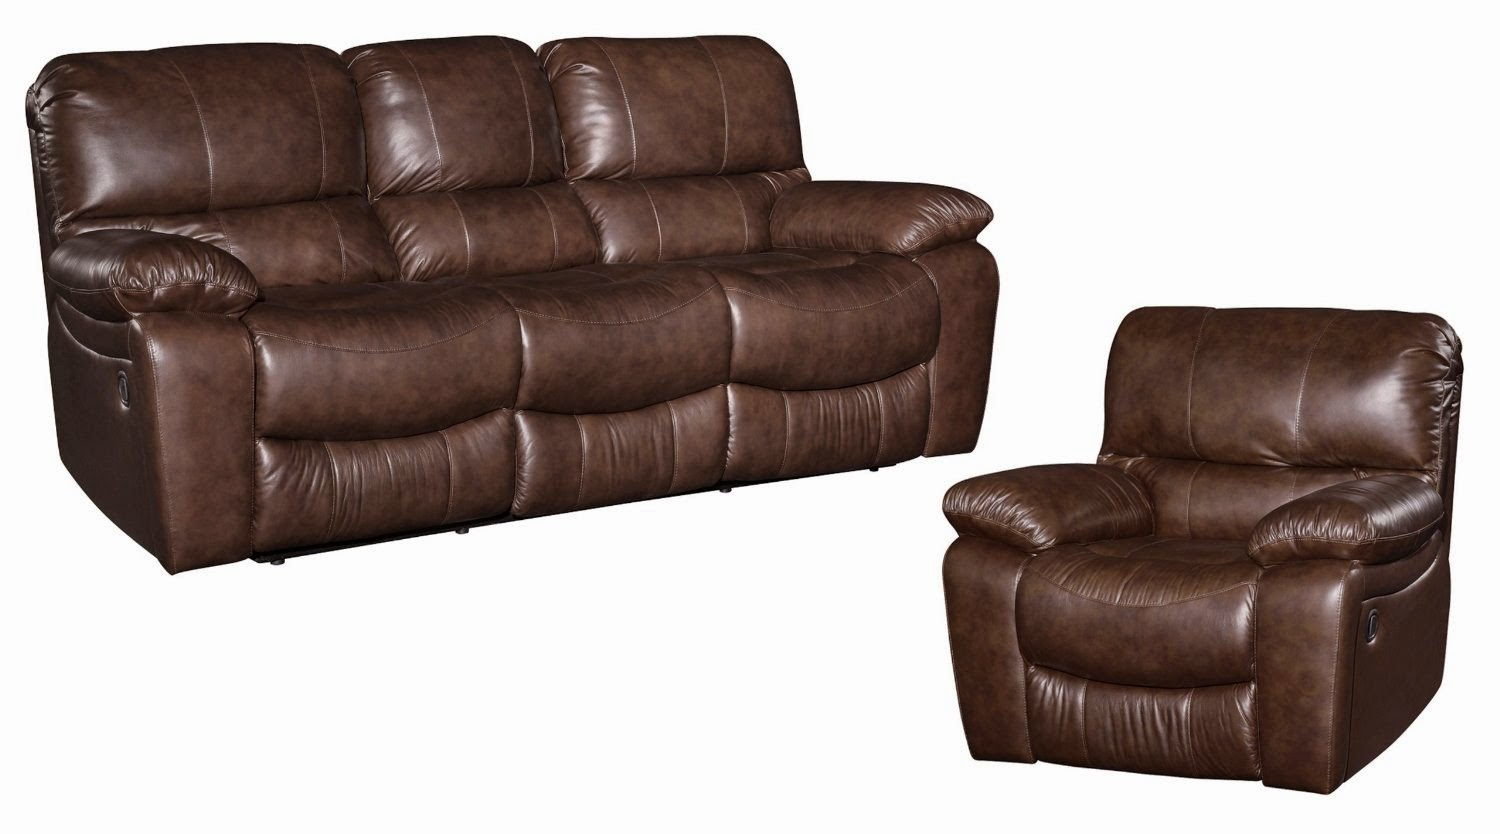 Denim Chair Covers Reclining Sofa Sets Sale: Leather Recliner Sofa Sets